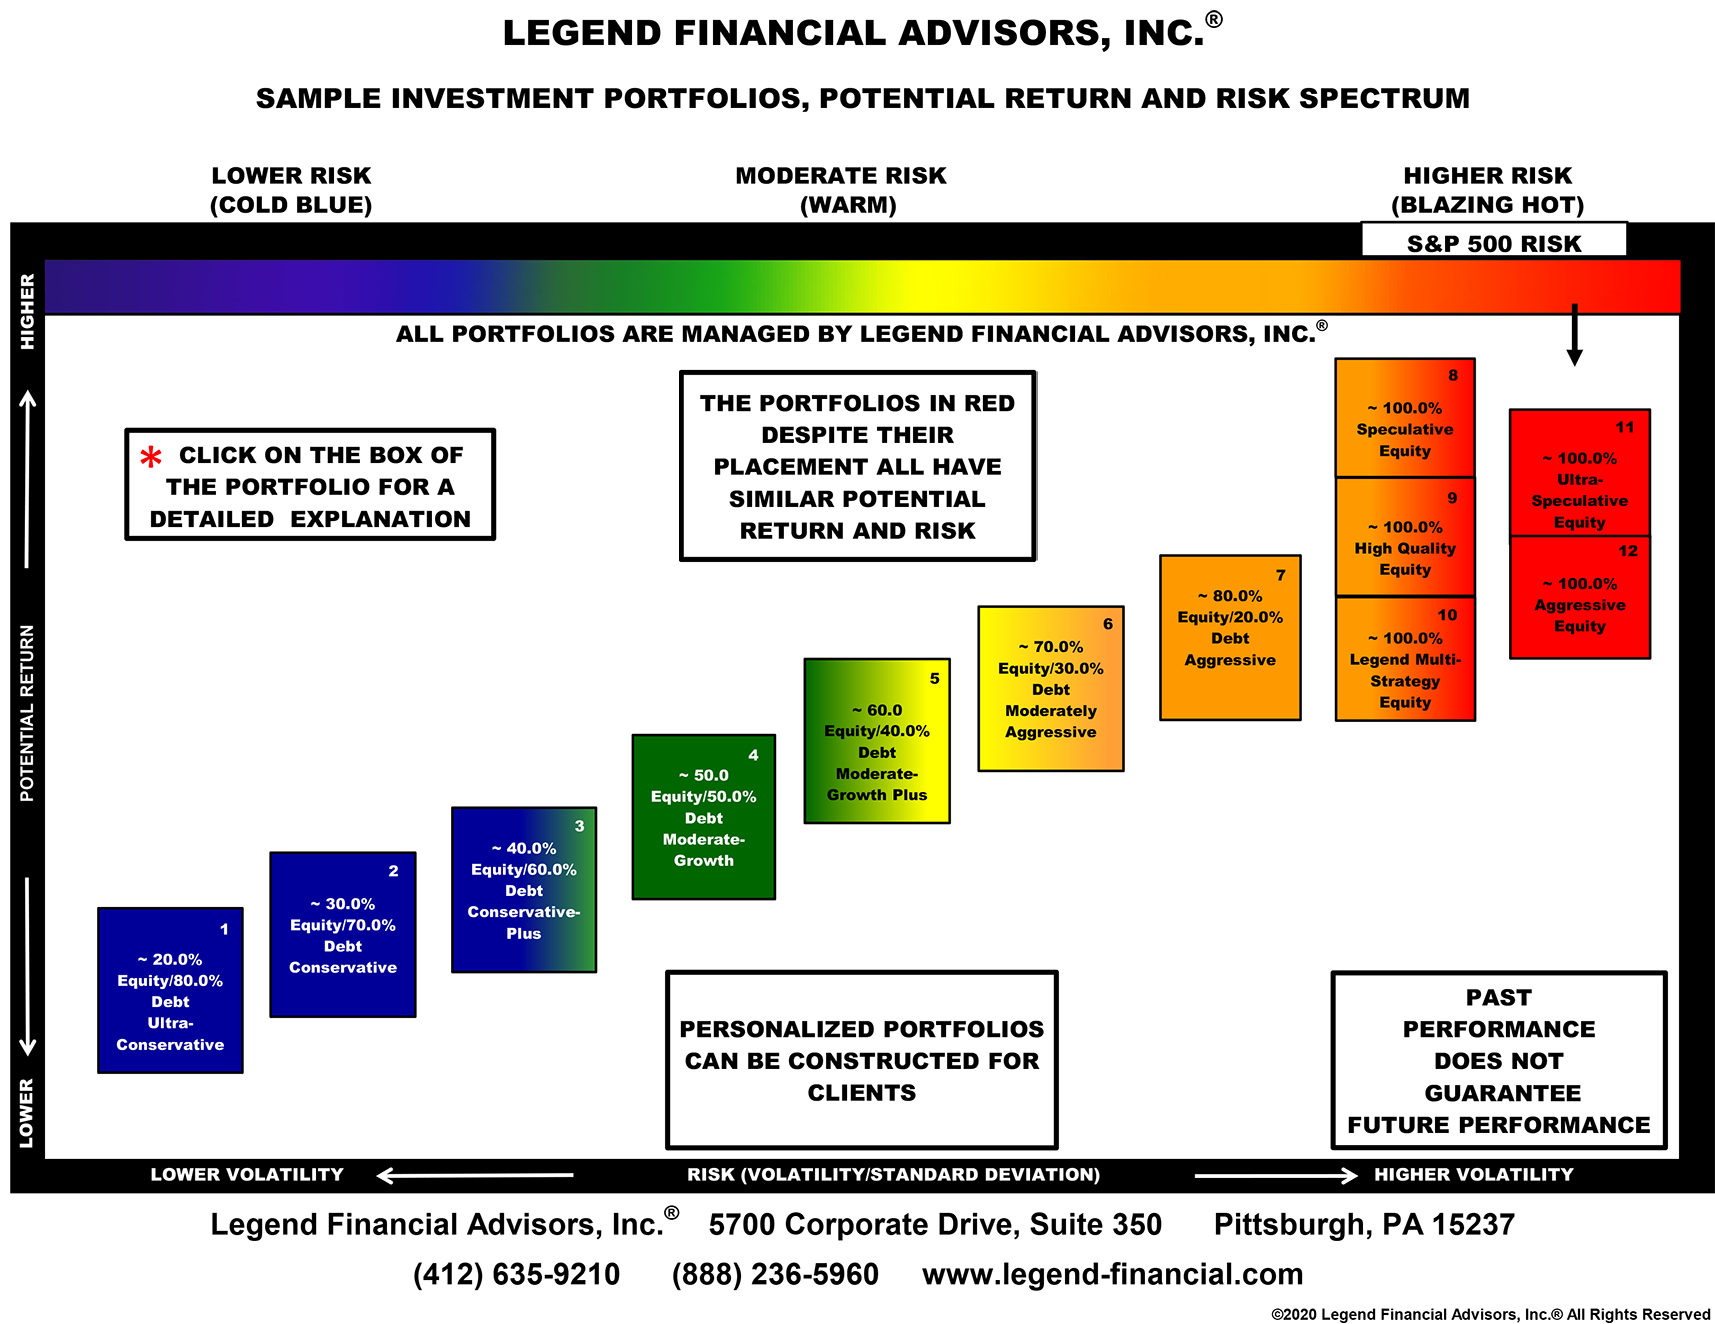 Risk Spectrum Chart: Sample Investment Portfolios, Potential Return and Risk Spectrum.  Lower Risk Portfolios are in Blue and Green color,  Moderate Risk Portfolios are in Green, Yellow and Orange colors,  Higher Risk Portfolios are in Orange and Red colors.